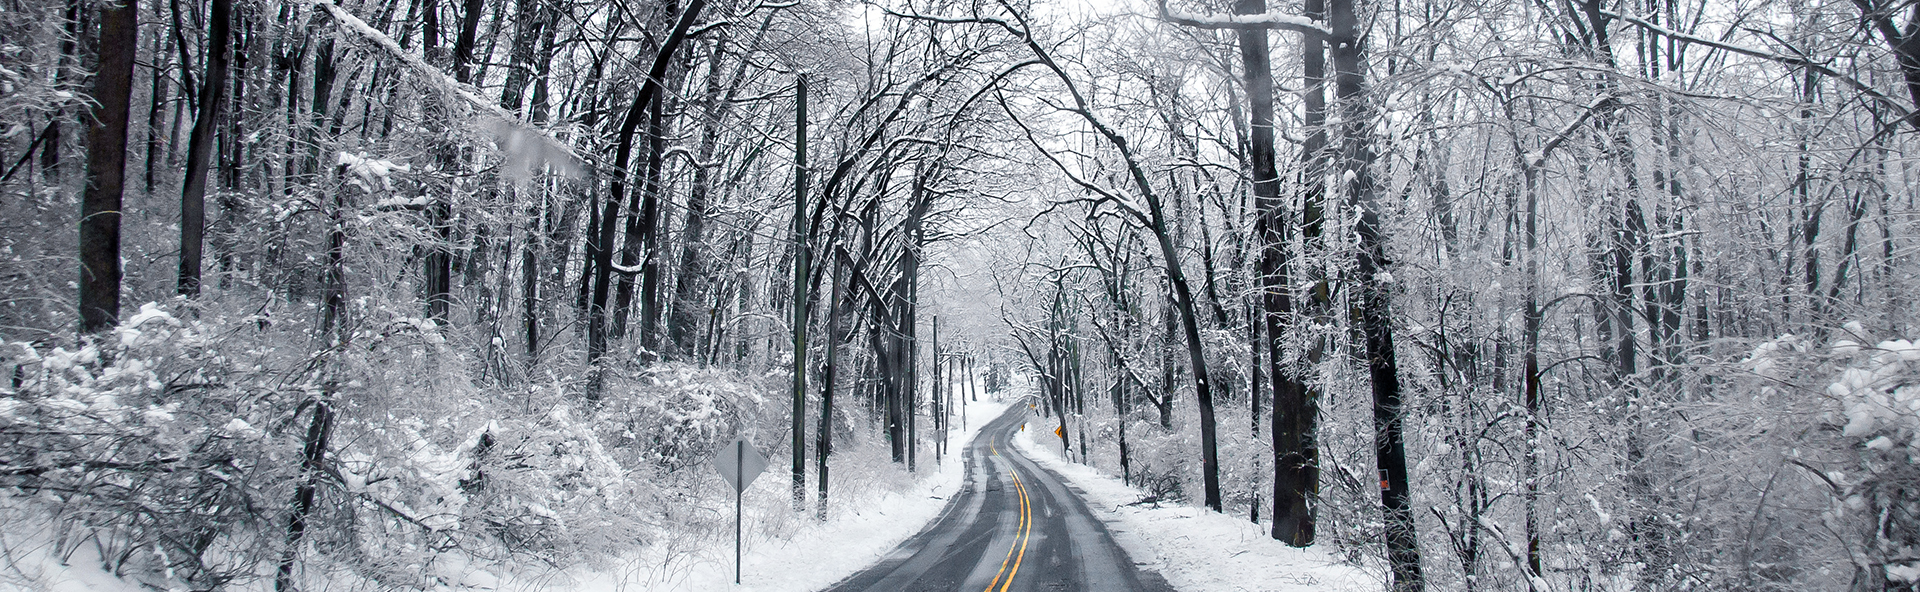 snowy-winter-road